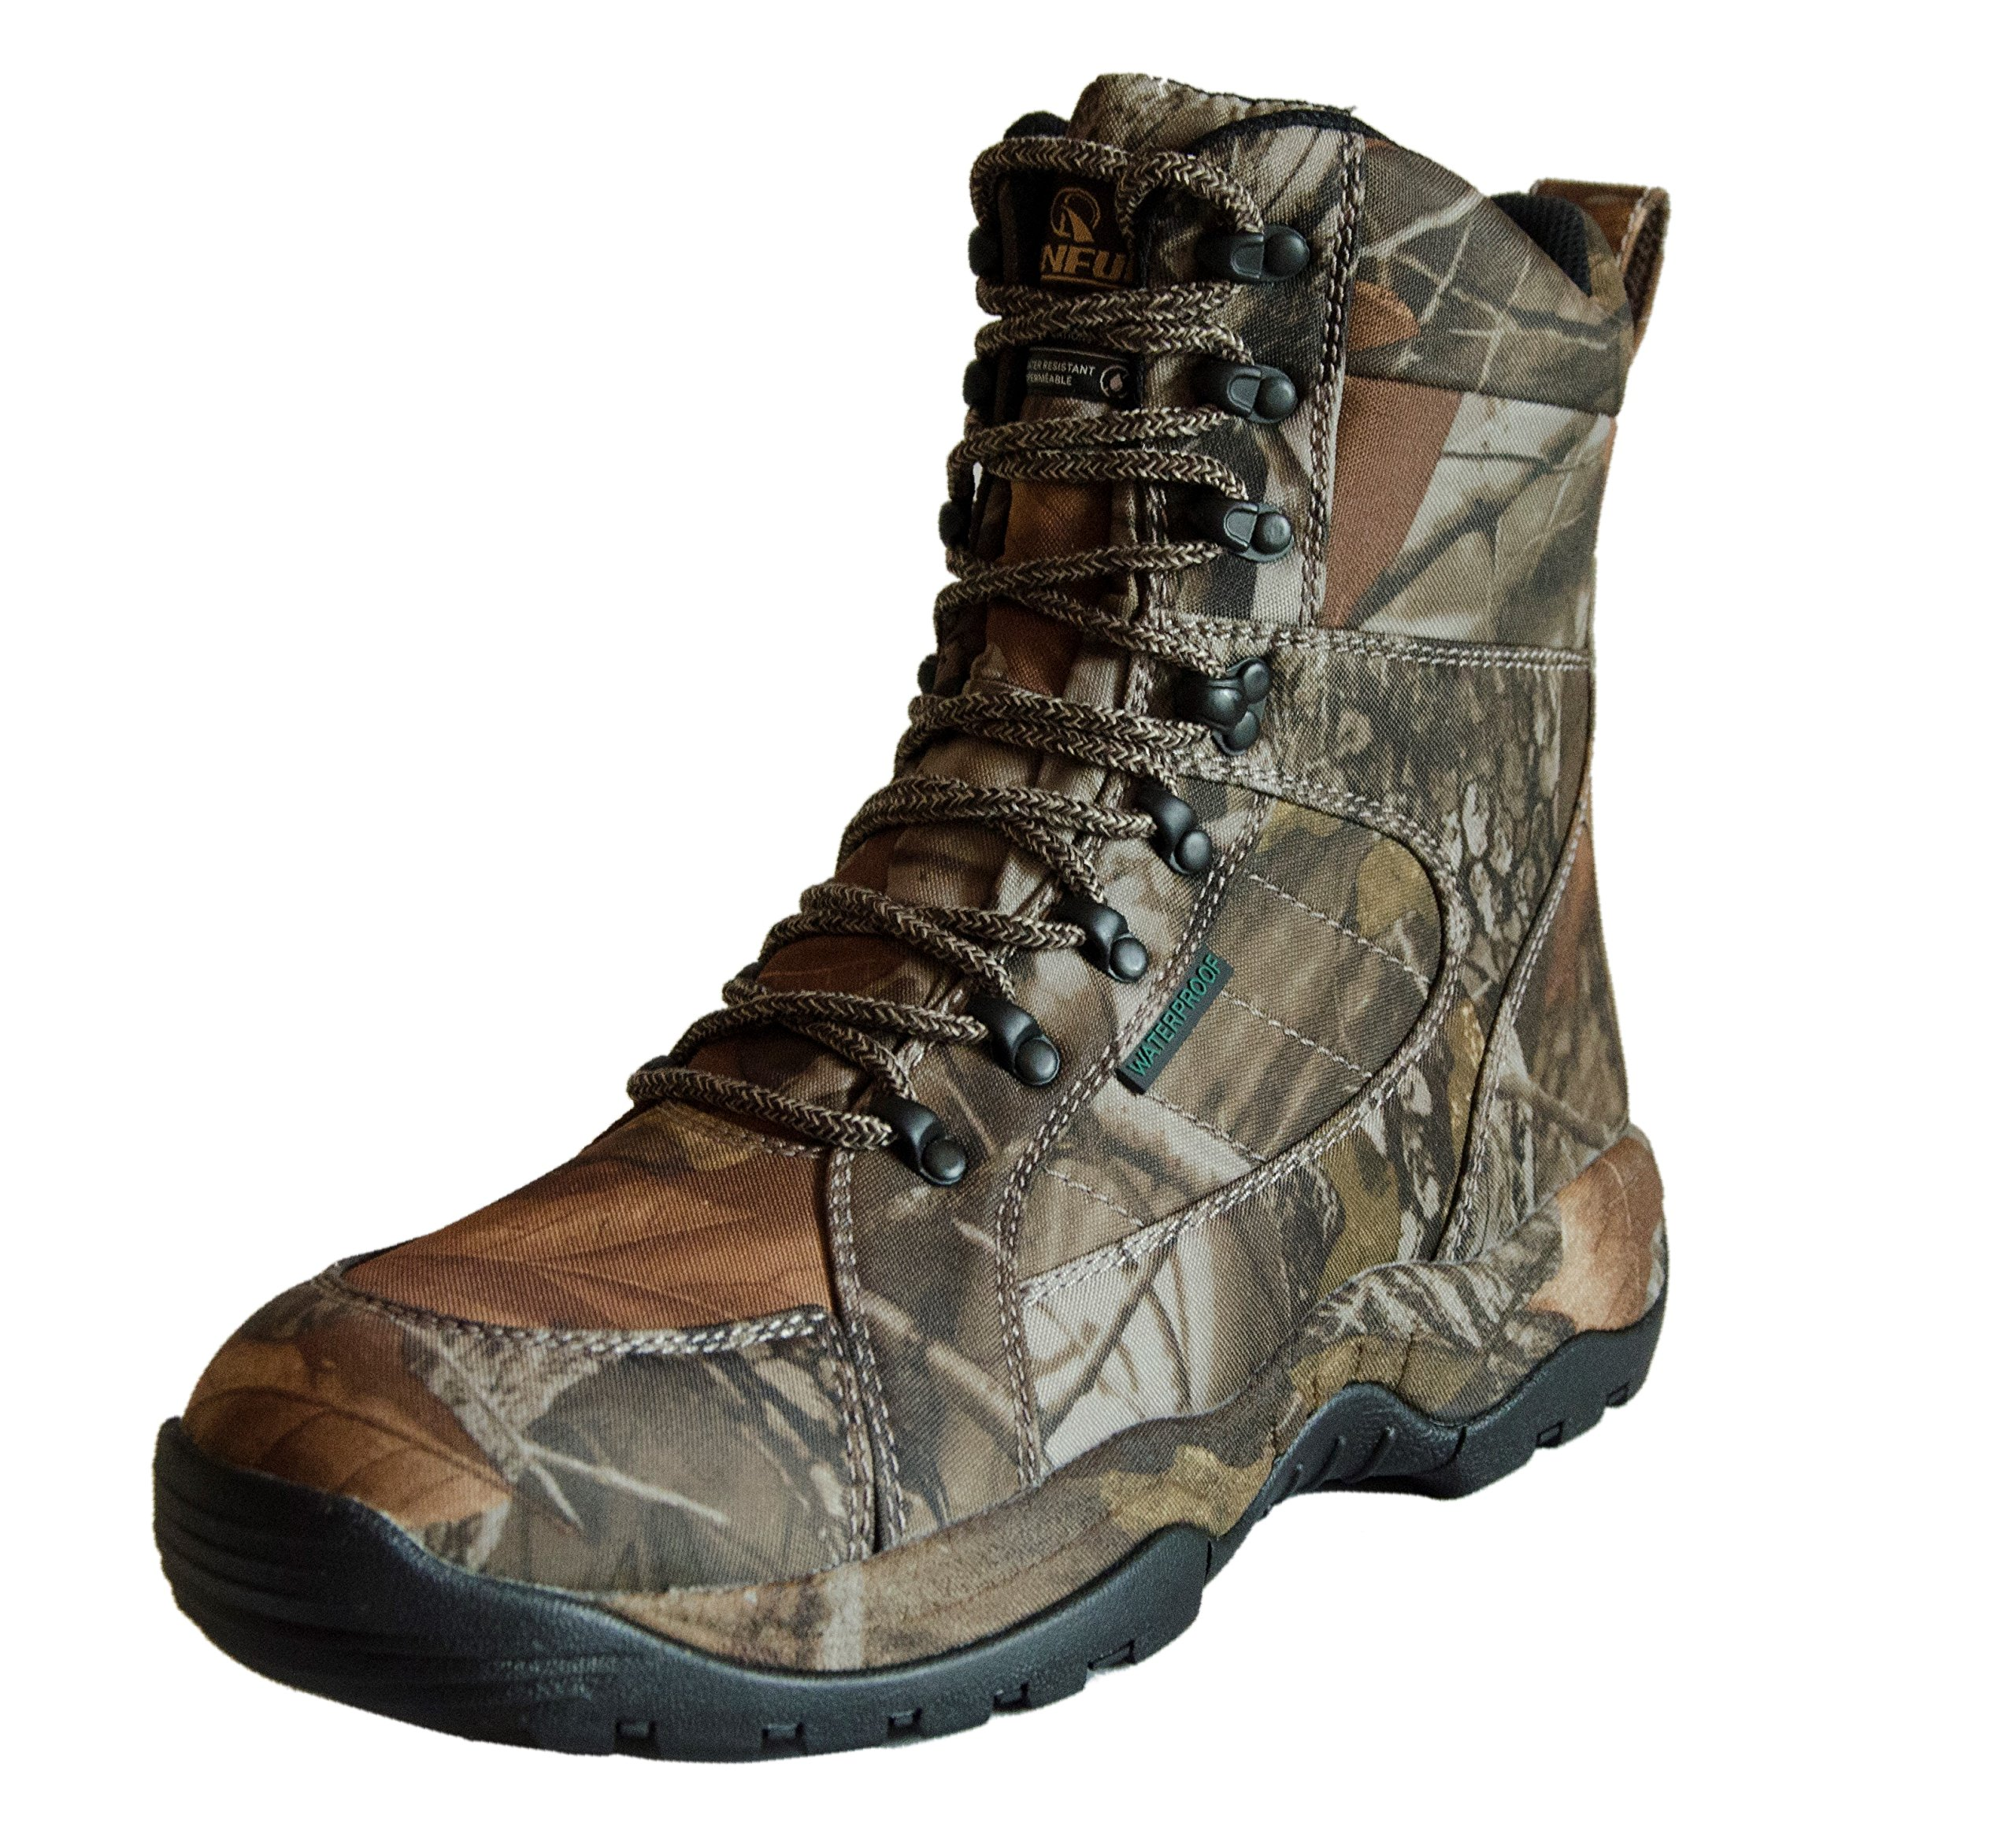 RUNFUN Men's Lightweight Anti-Slip Waterproof Hunting Boots by RUNFUN